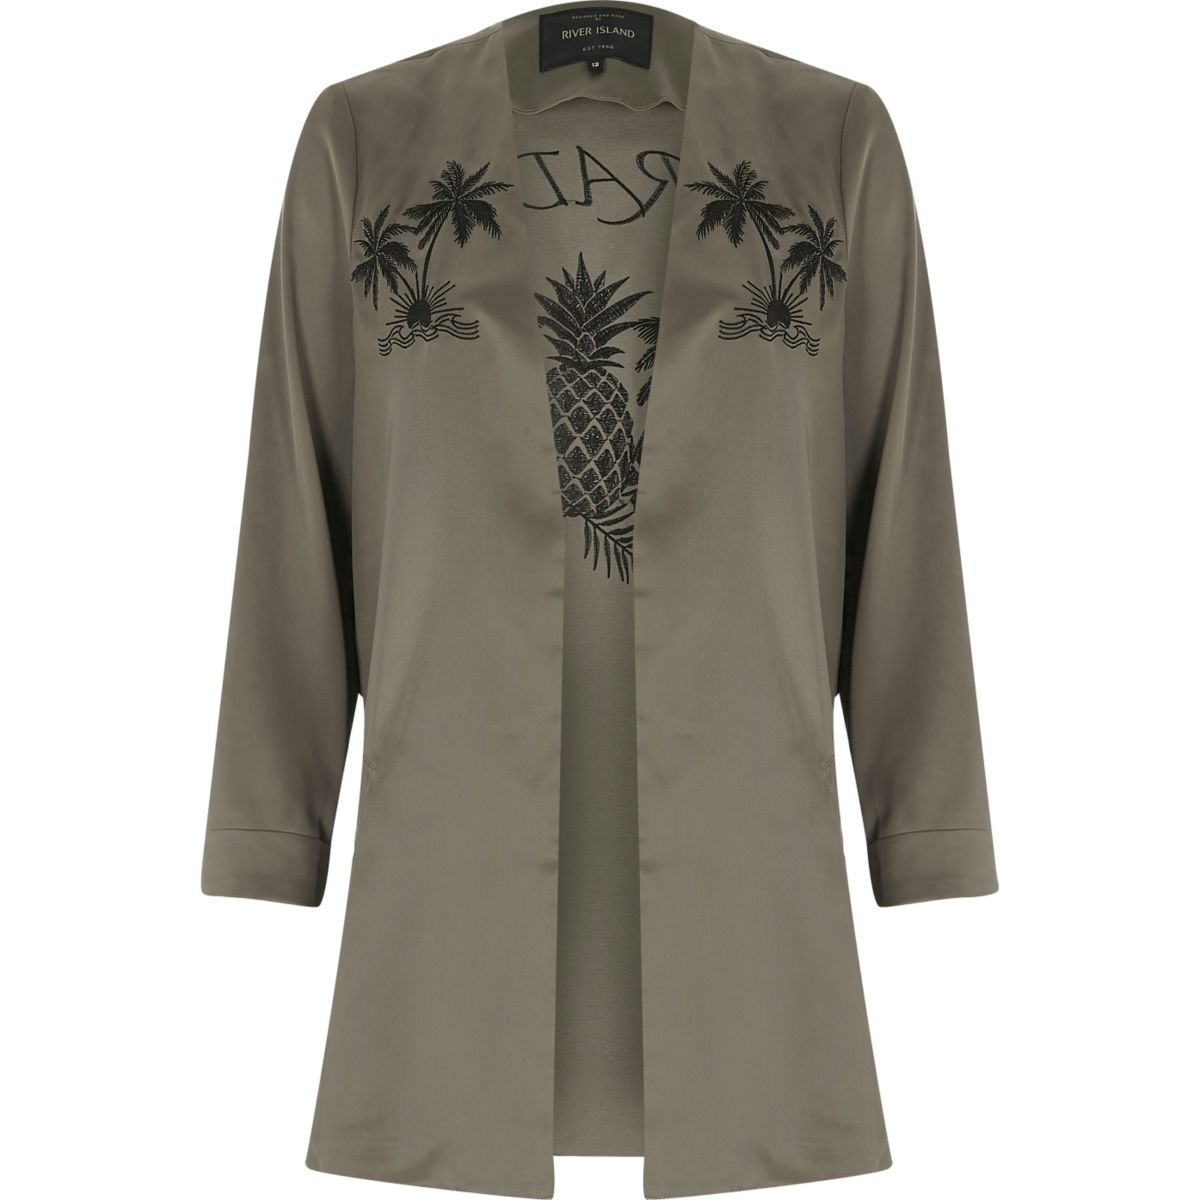 Khaki green paradise duster coat - Coats & Jackets - Sale - women